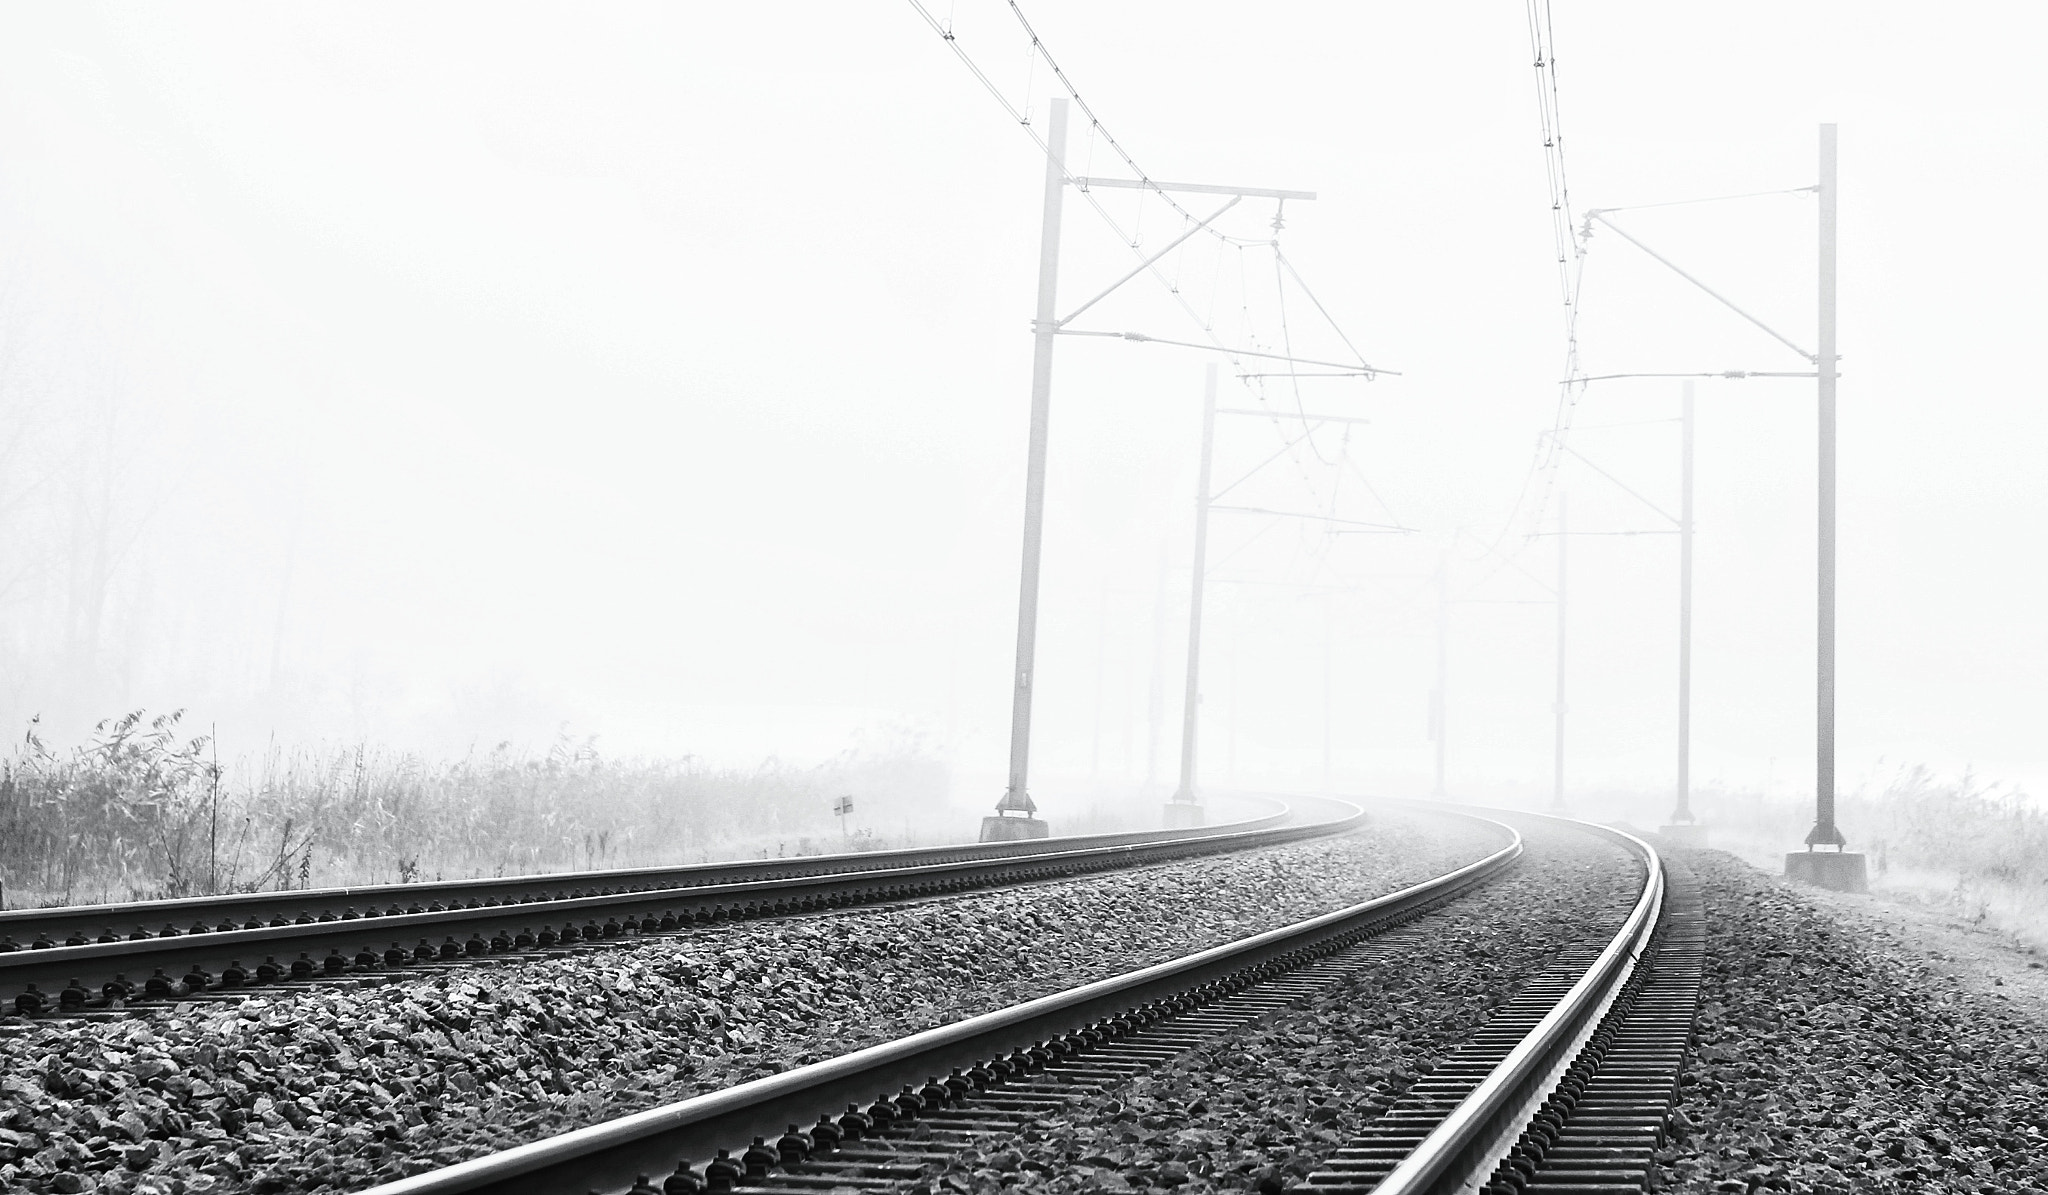 Photograph On track by Joost Lagerweij on 500px